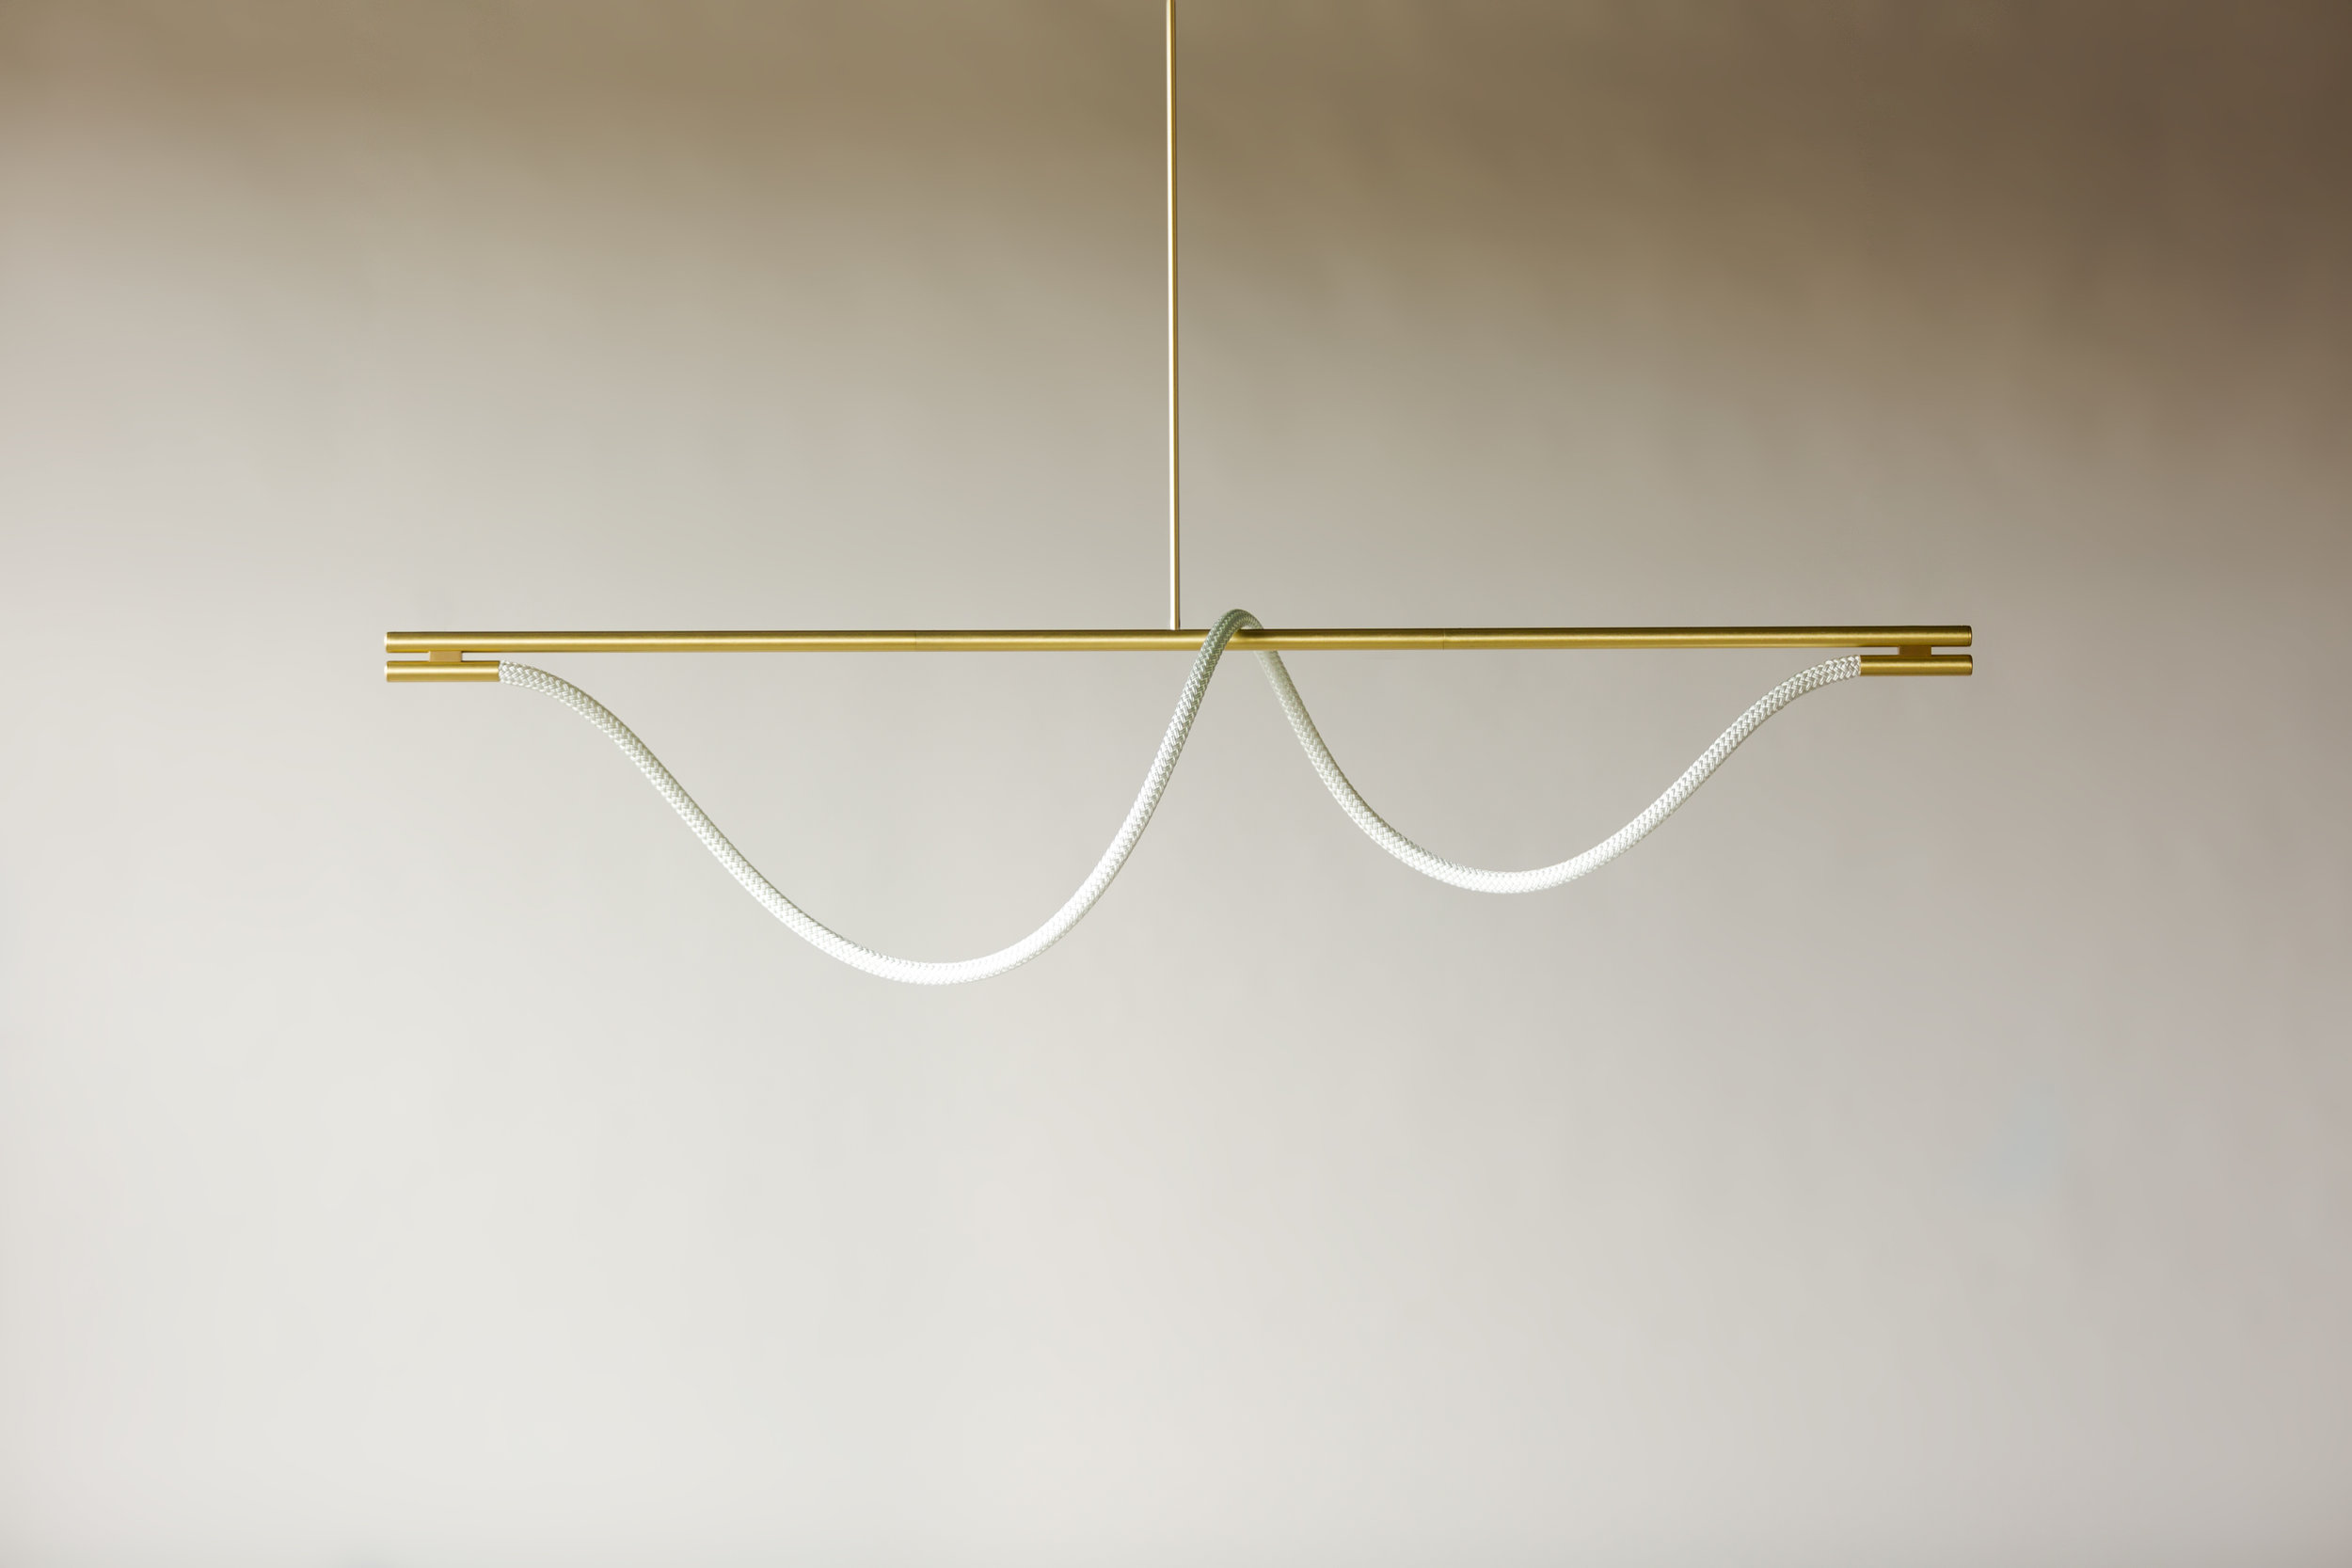 6' Surrey Suspension II - Rod  (pictured in Satin Brass / turned off)